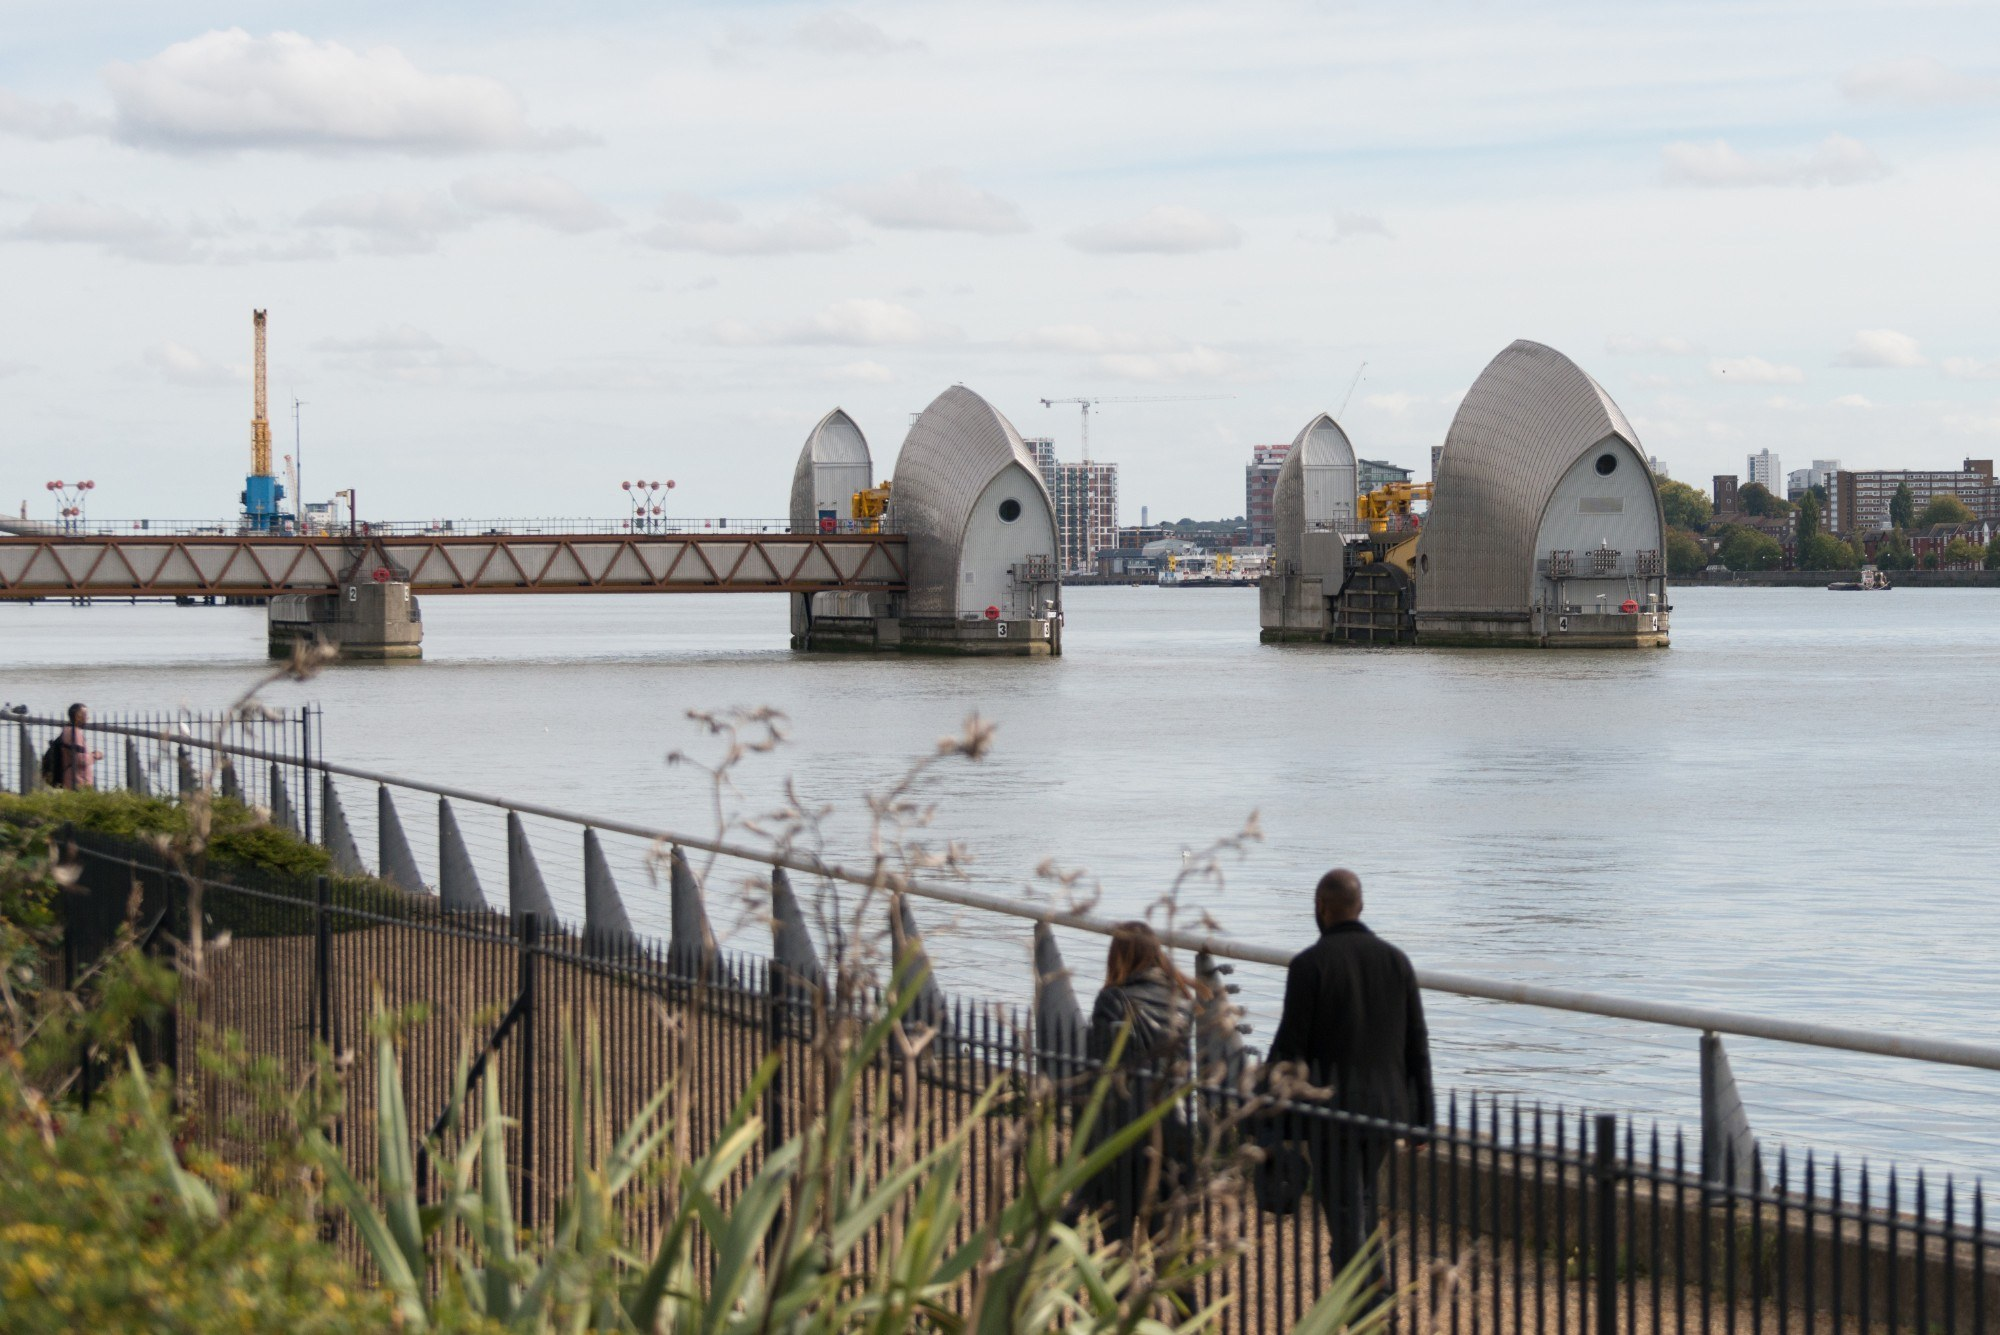 The Thames Barrier whilst open